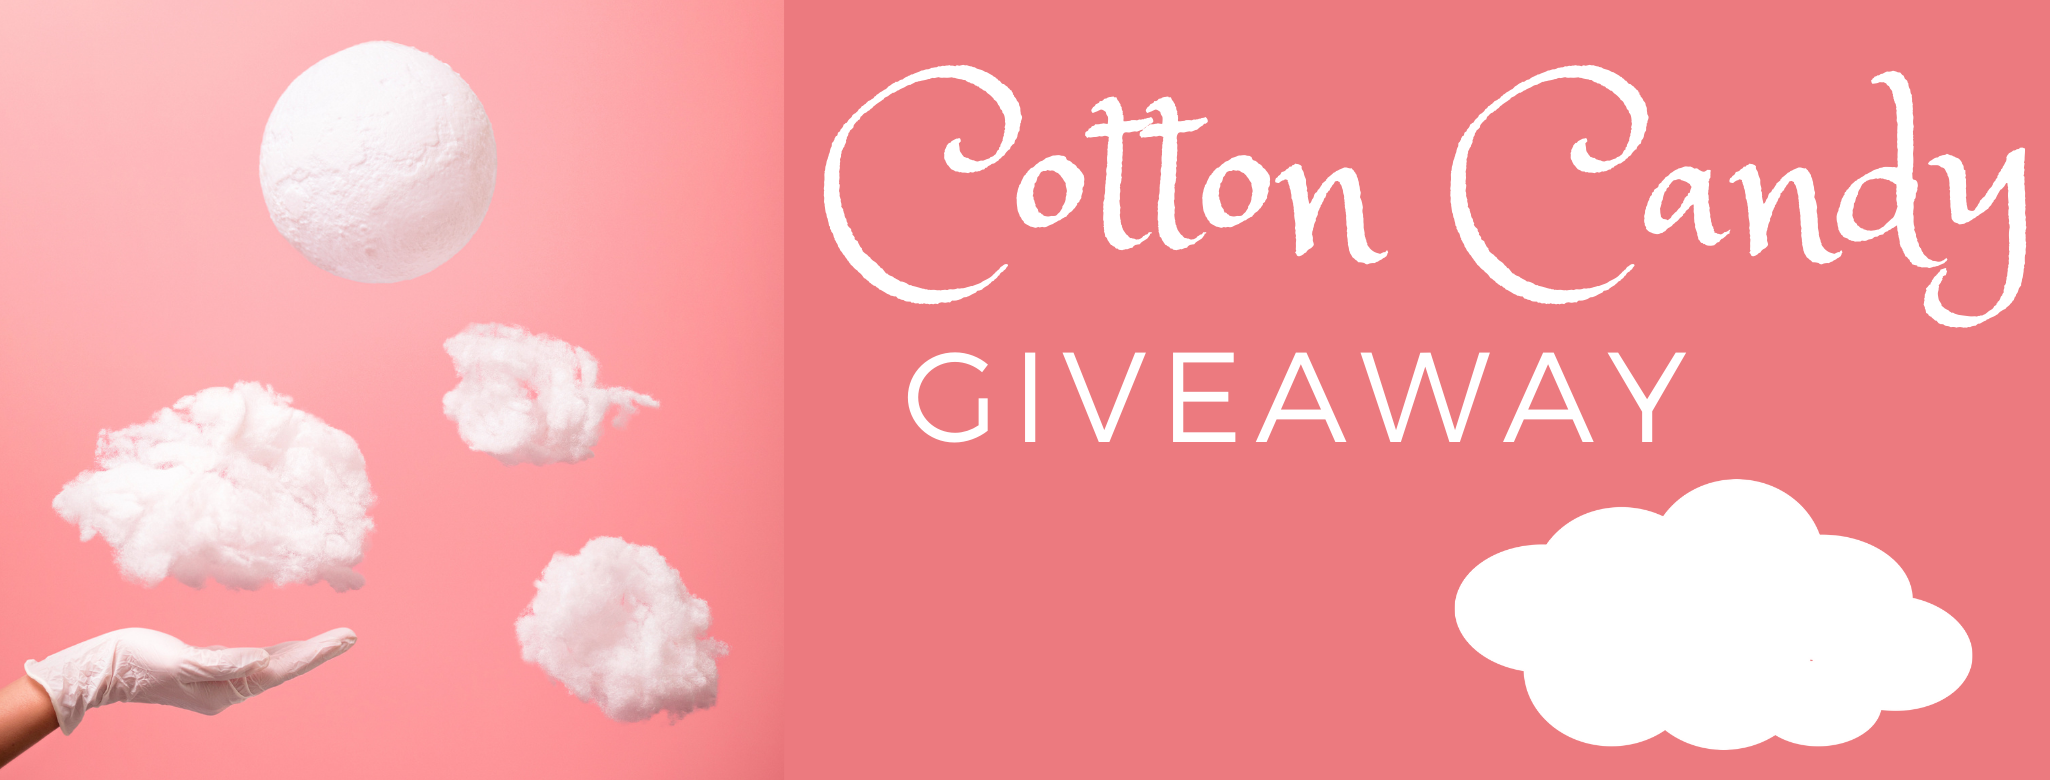 Cotton Candy Giveaway